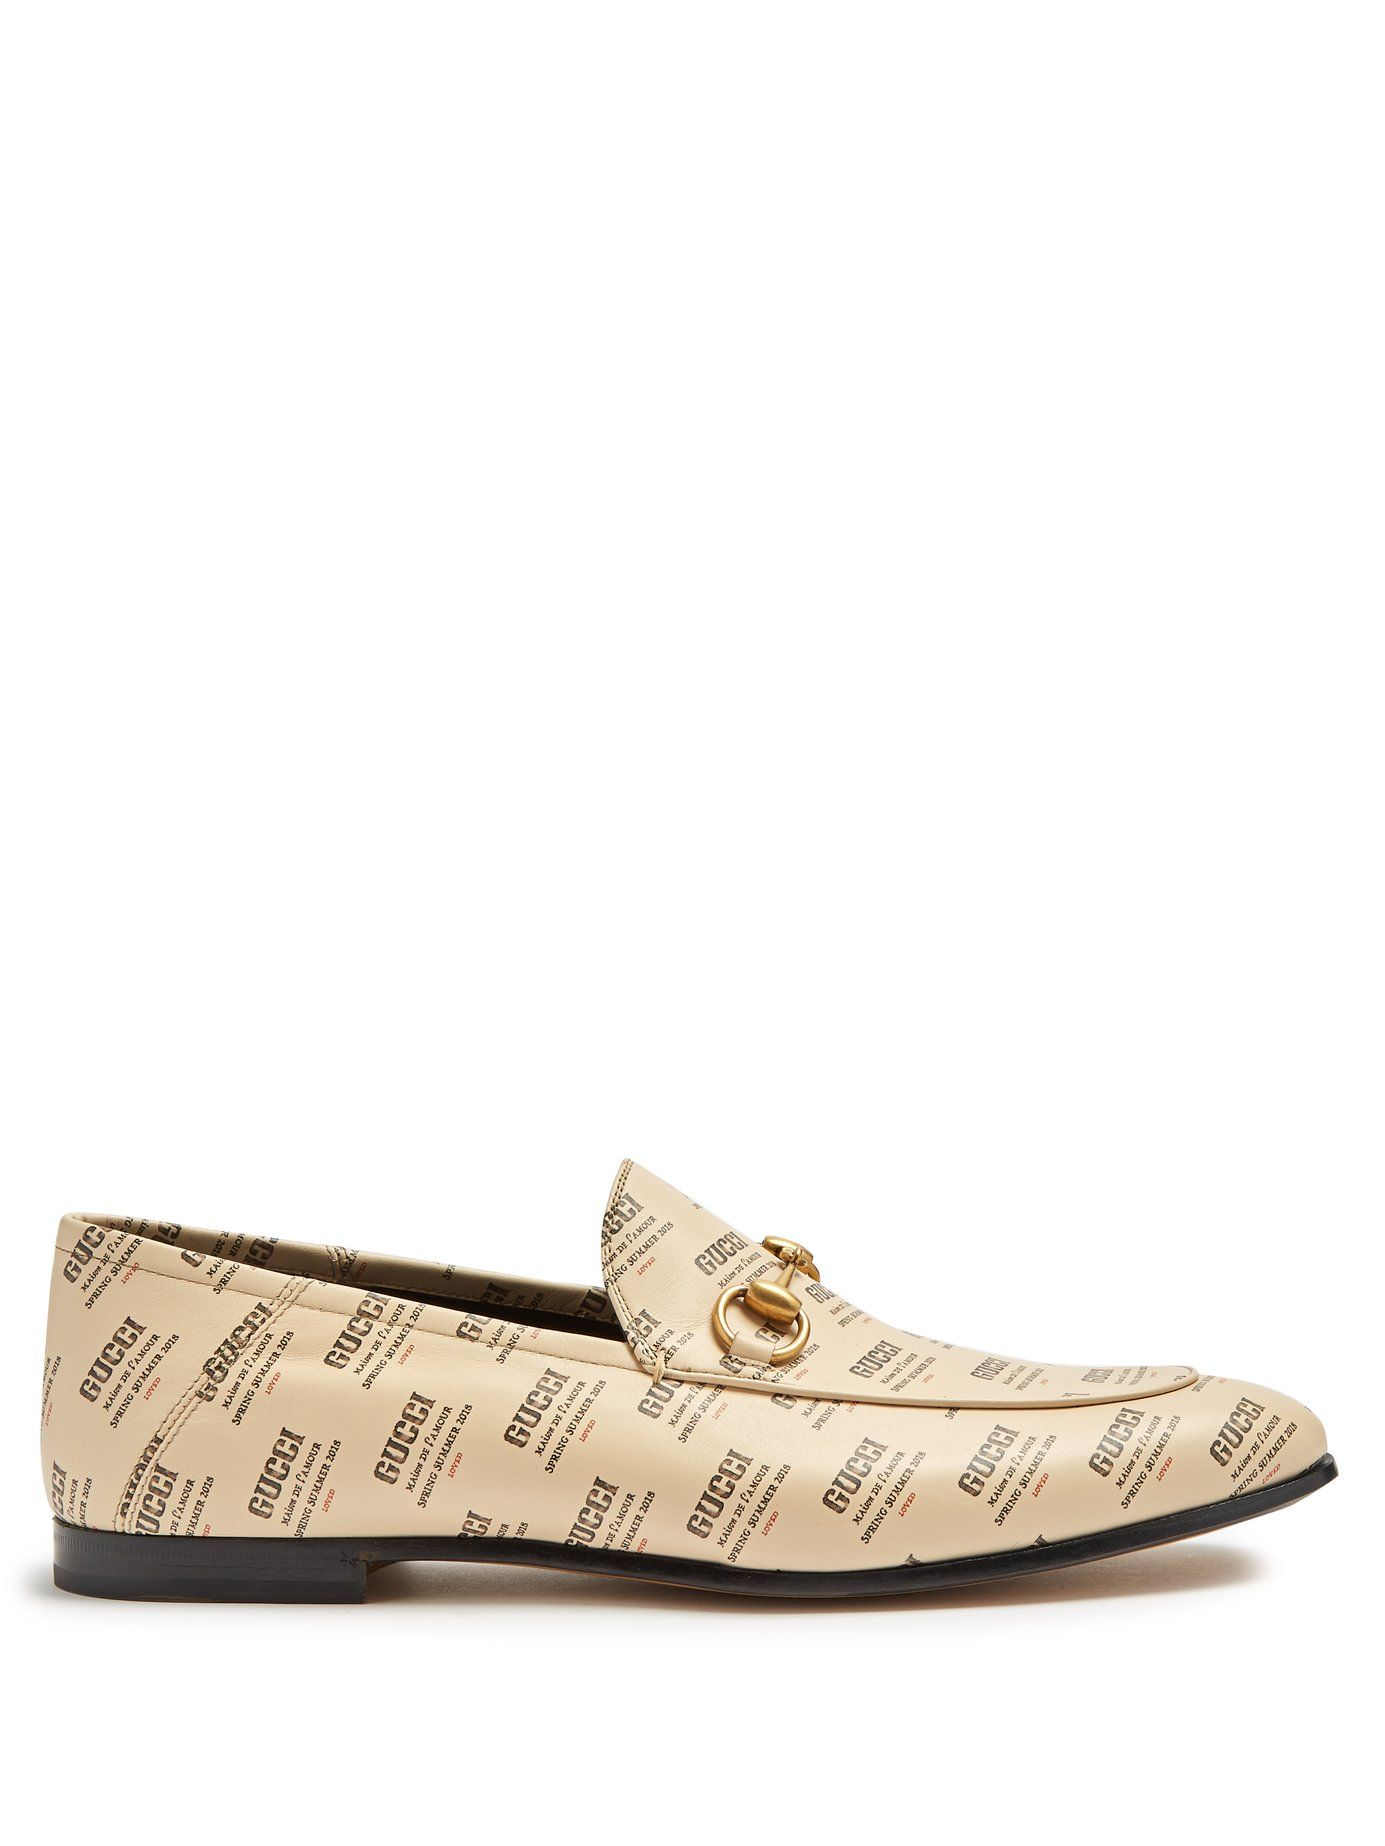 Gucci BRIXTON LOGO PRINTED LEATHER LOAFERS 6eZzVss